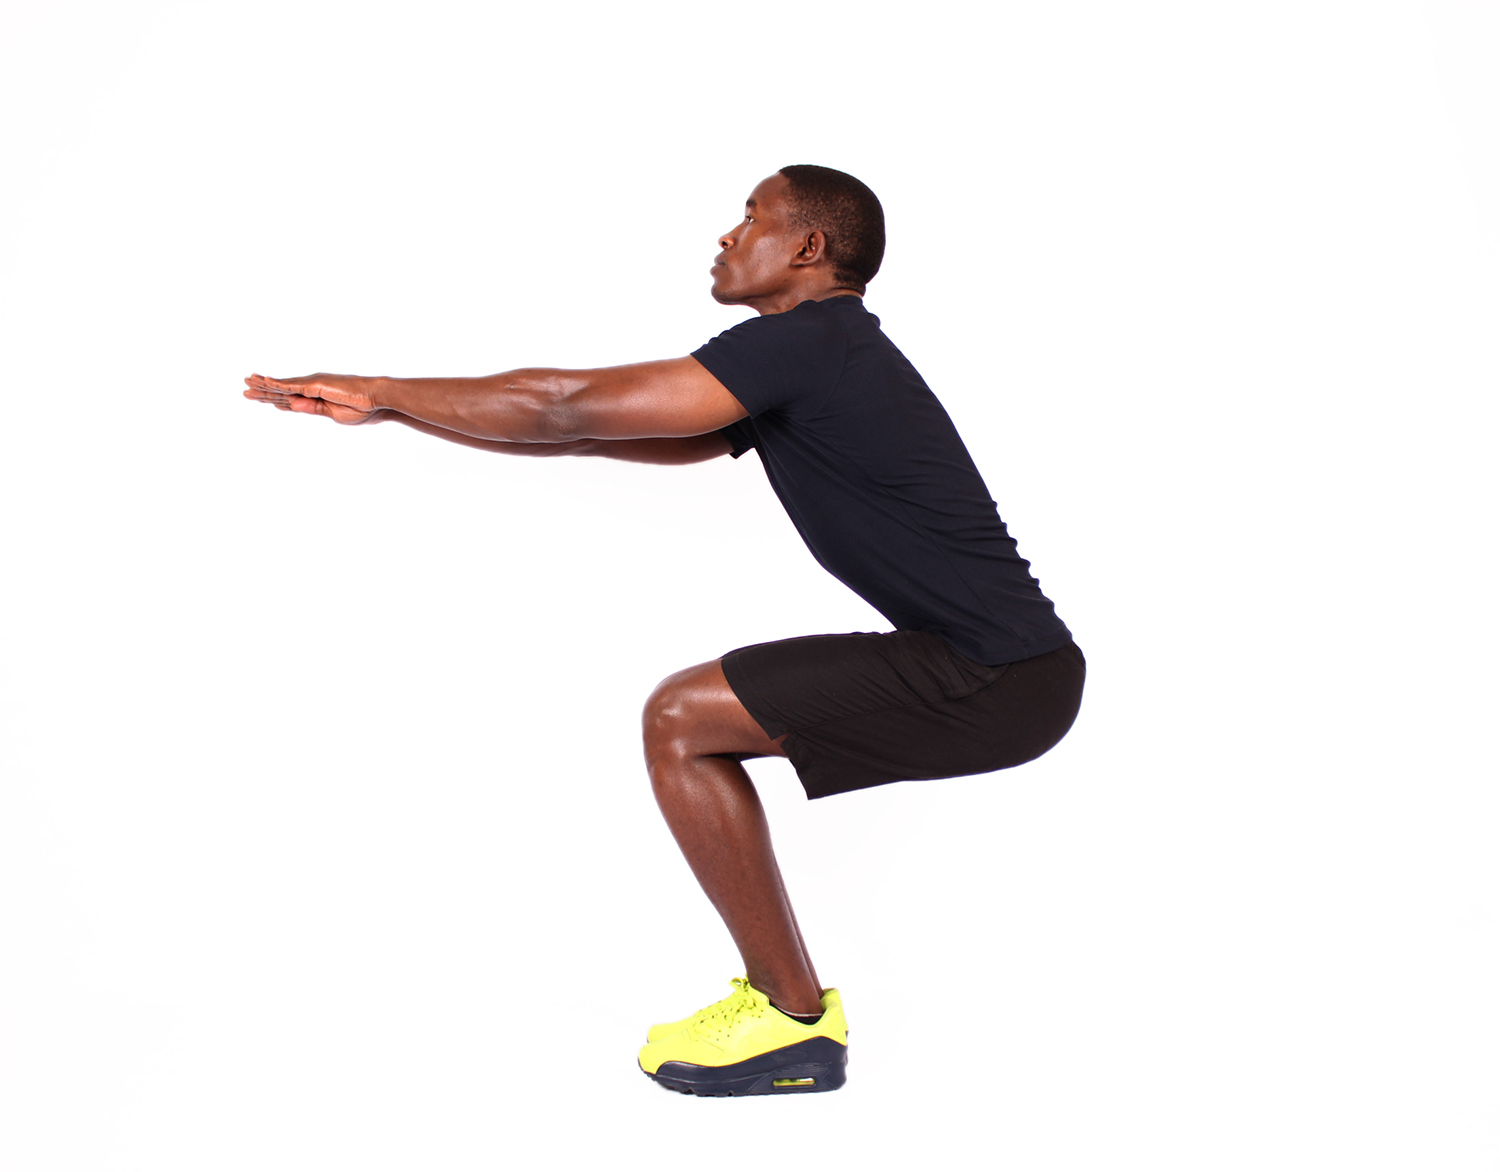 Muscular man doing air squats exercise